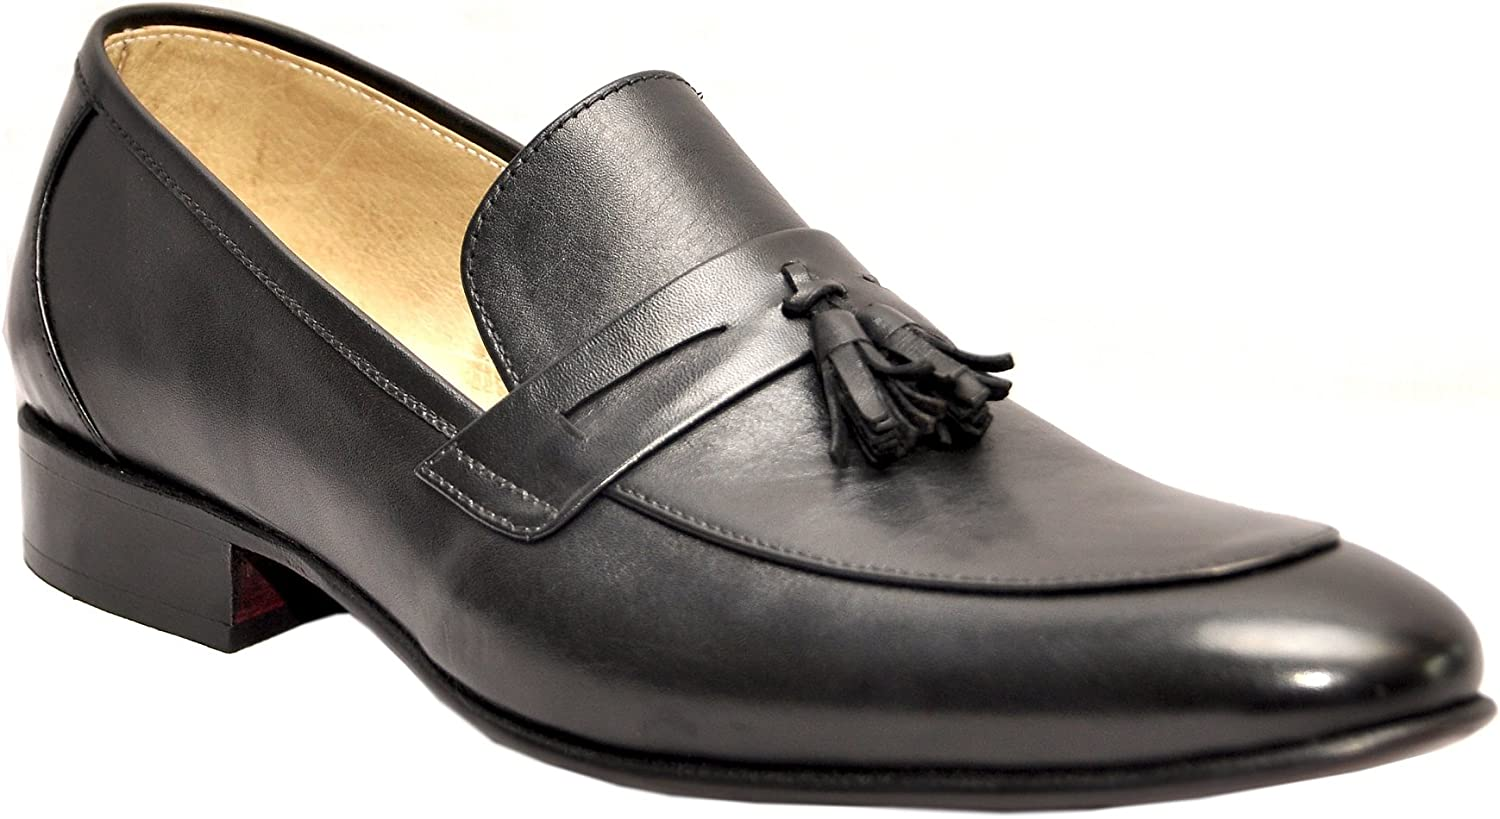 Johny Weber Handmade Black Leather with Tassels Monk Dress shoes shoes with Goodyear Welted Construction